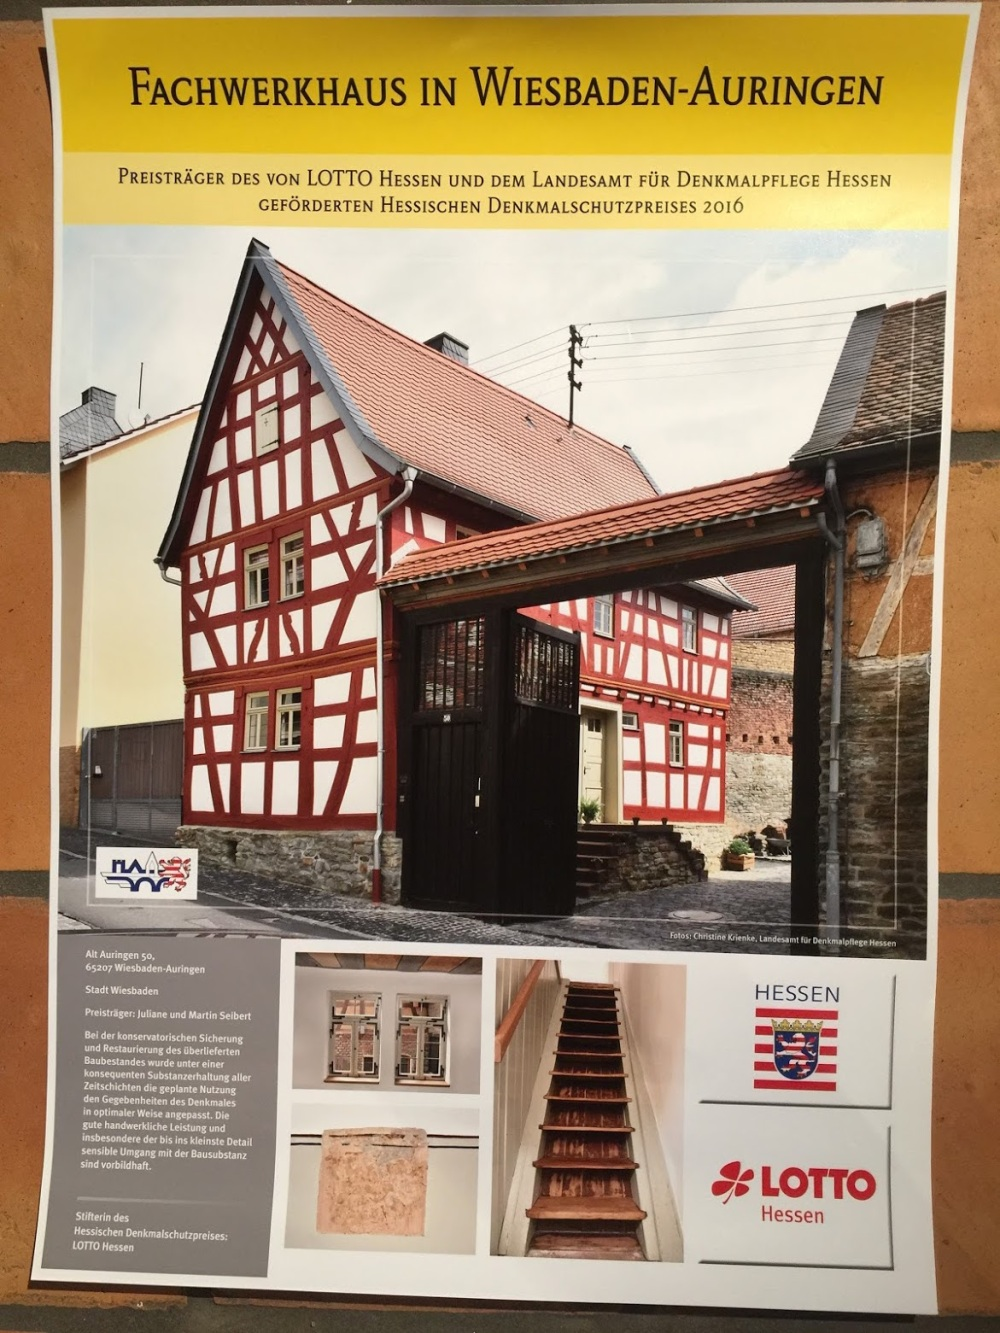 Award Poster about our project in Wiesbaden-Auringen